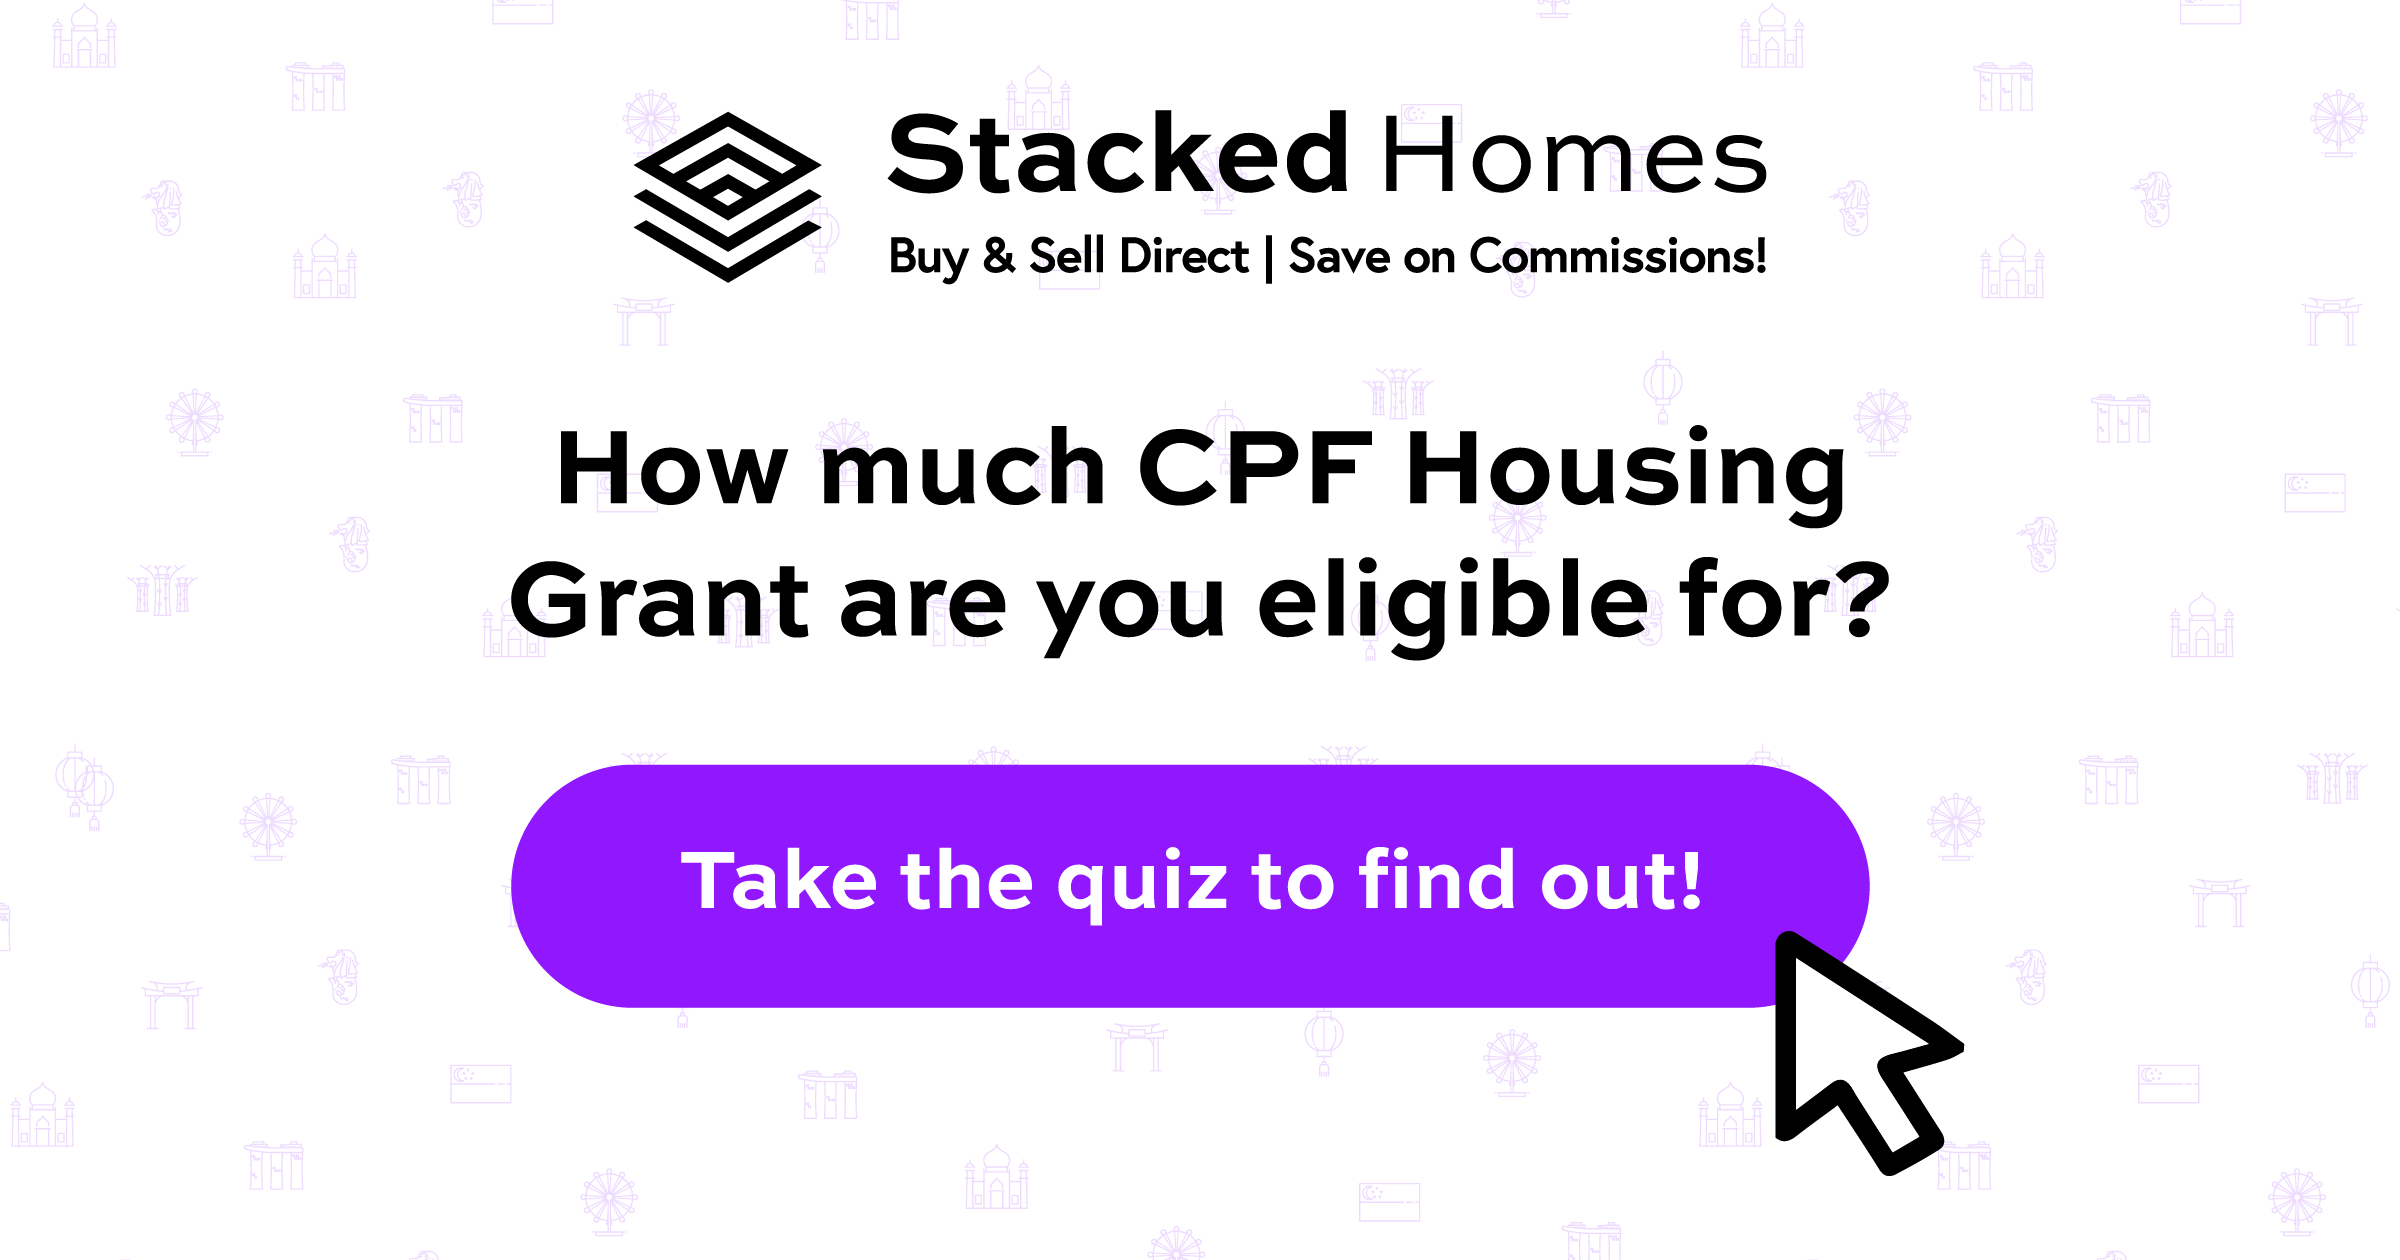 CPF Housing Grant Interactive Quiz by Stacked Homes - Buy & Sell Direct, Save on Commissions!